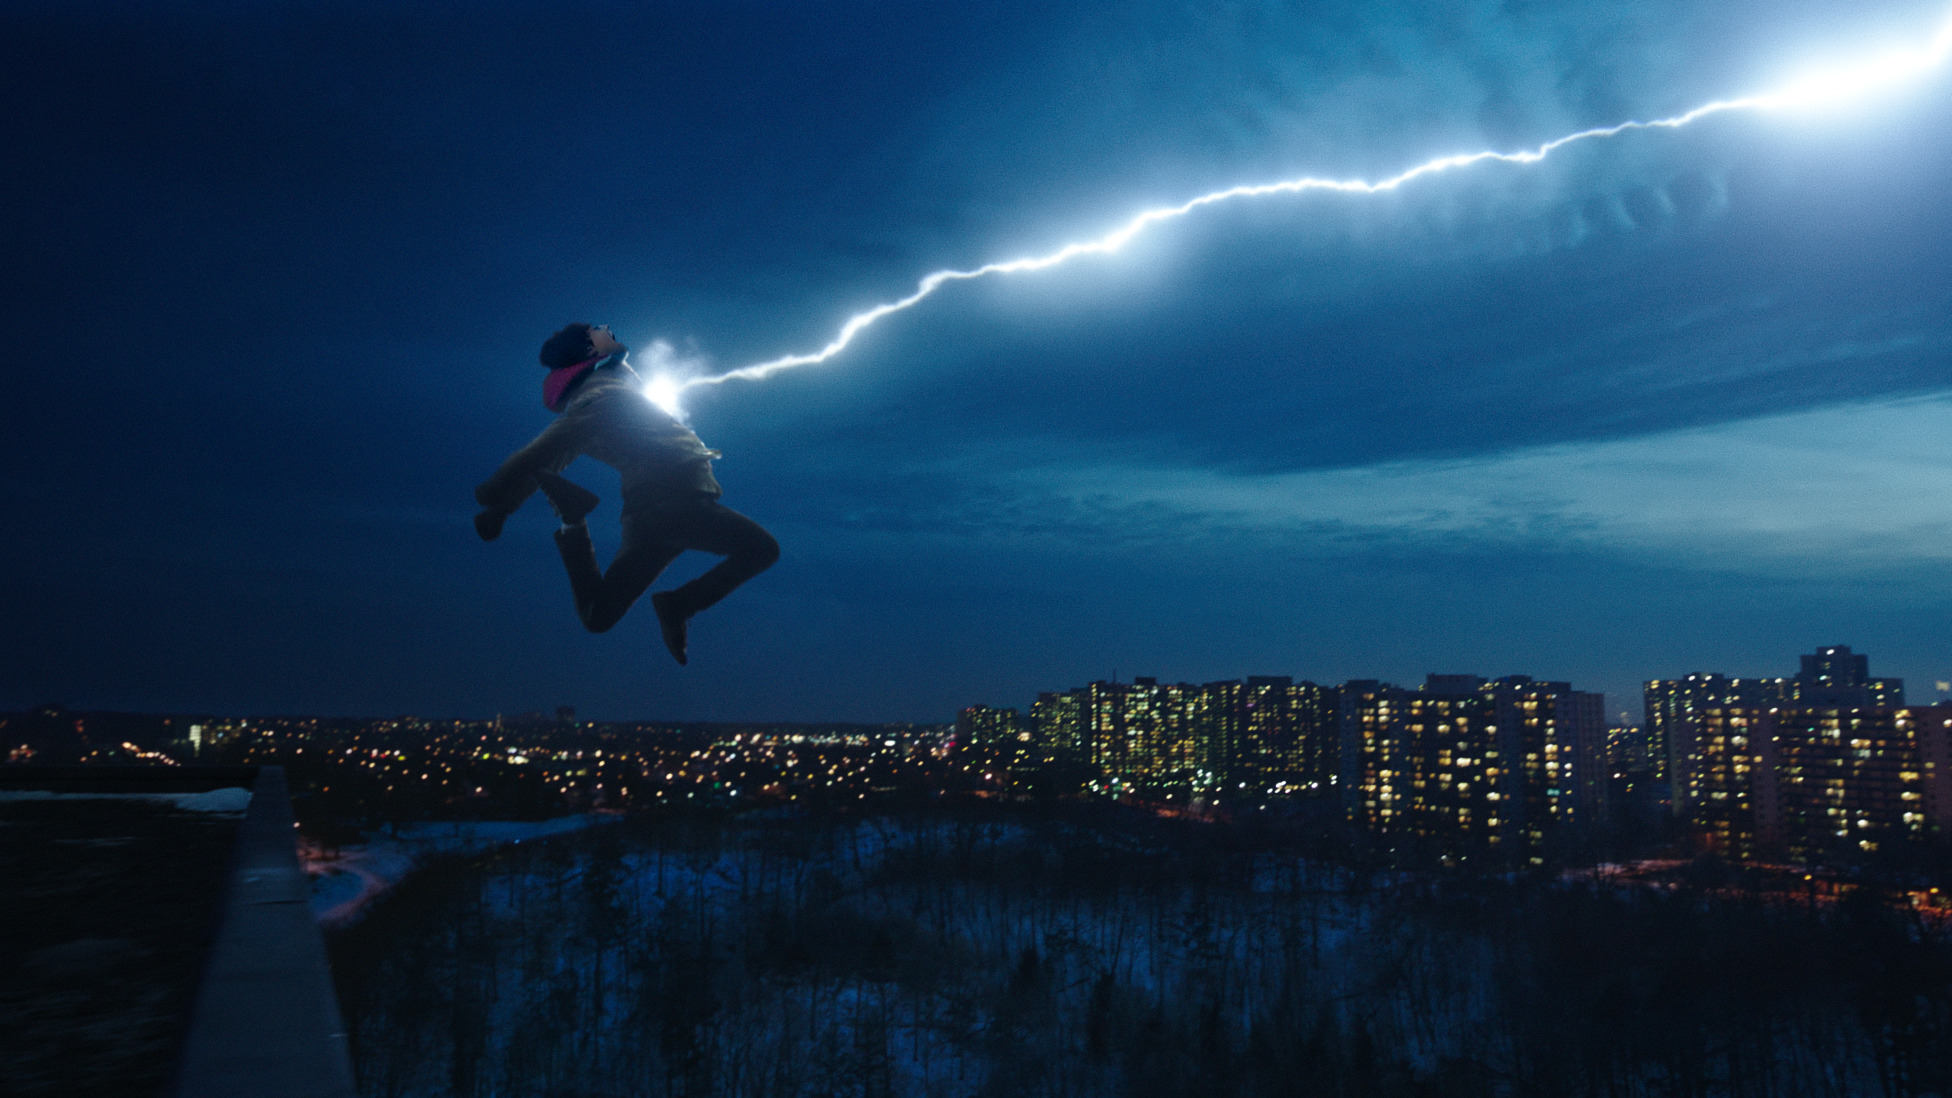 Shazam! Screenwriter Henry Gayden Signs on For a Sequel